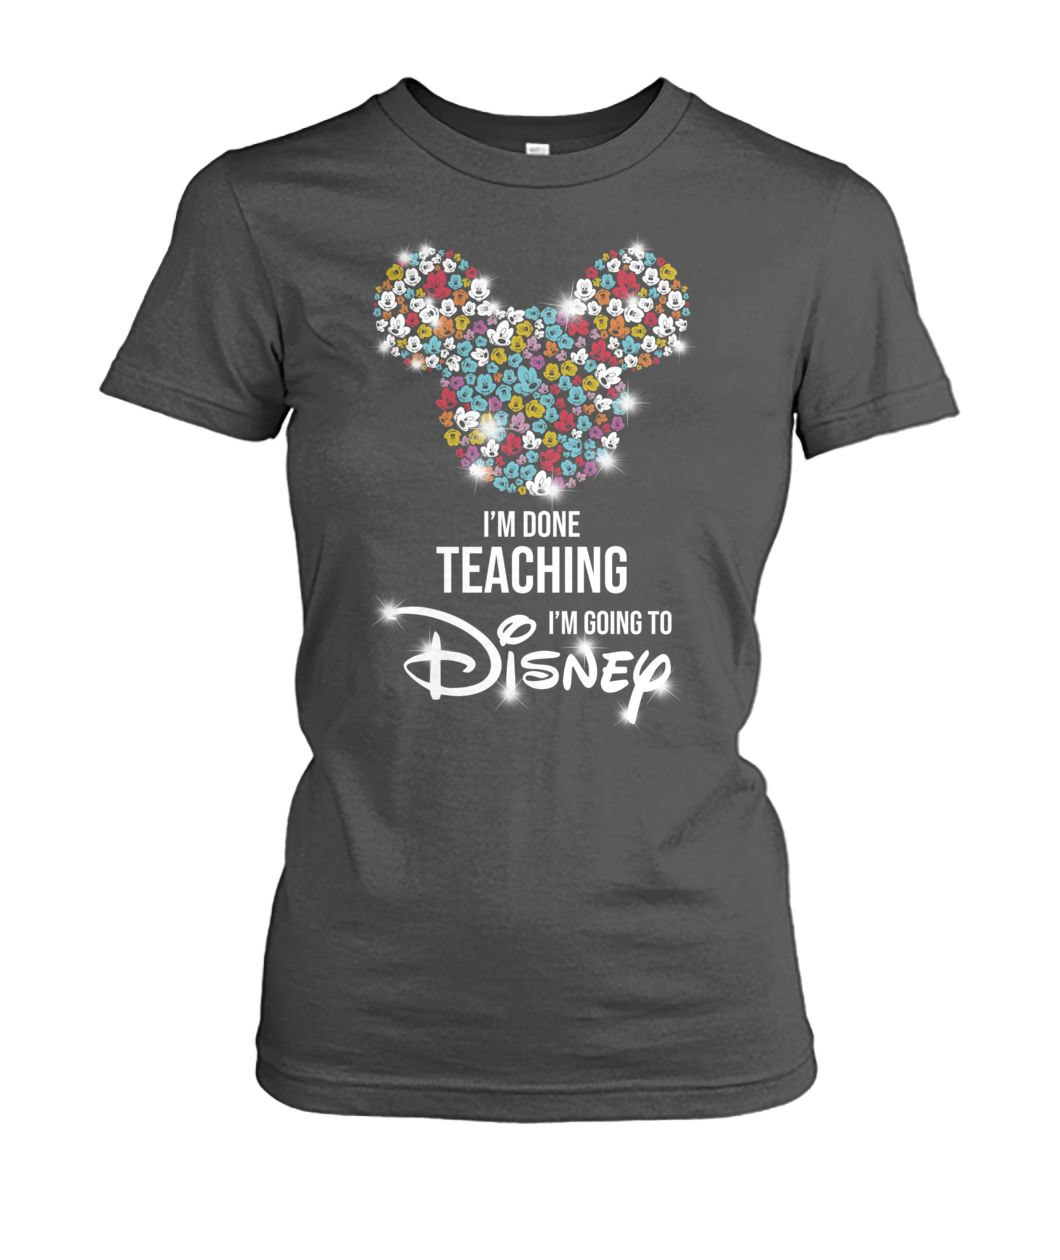 Mickey I'm done teaching I'm going to disney women's crew tee